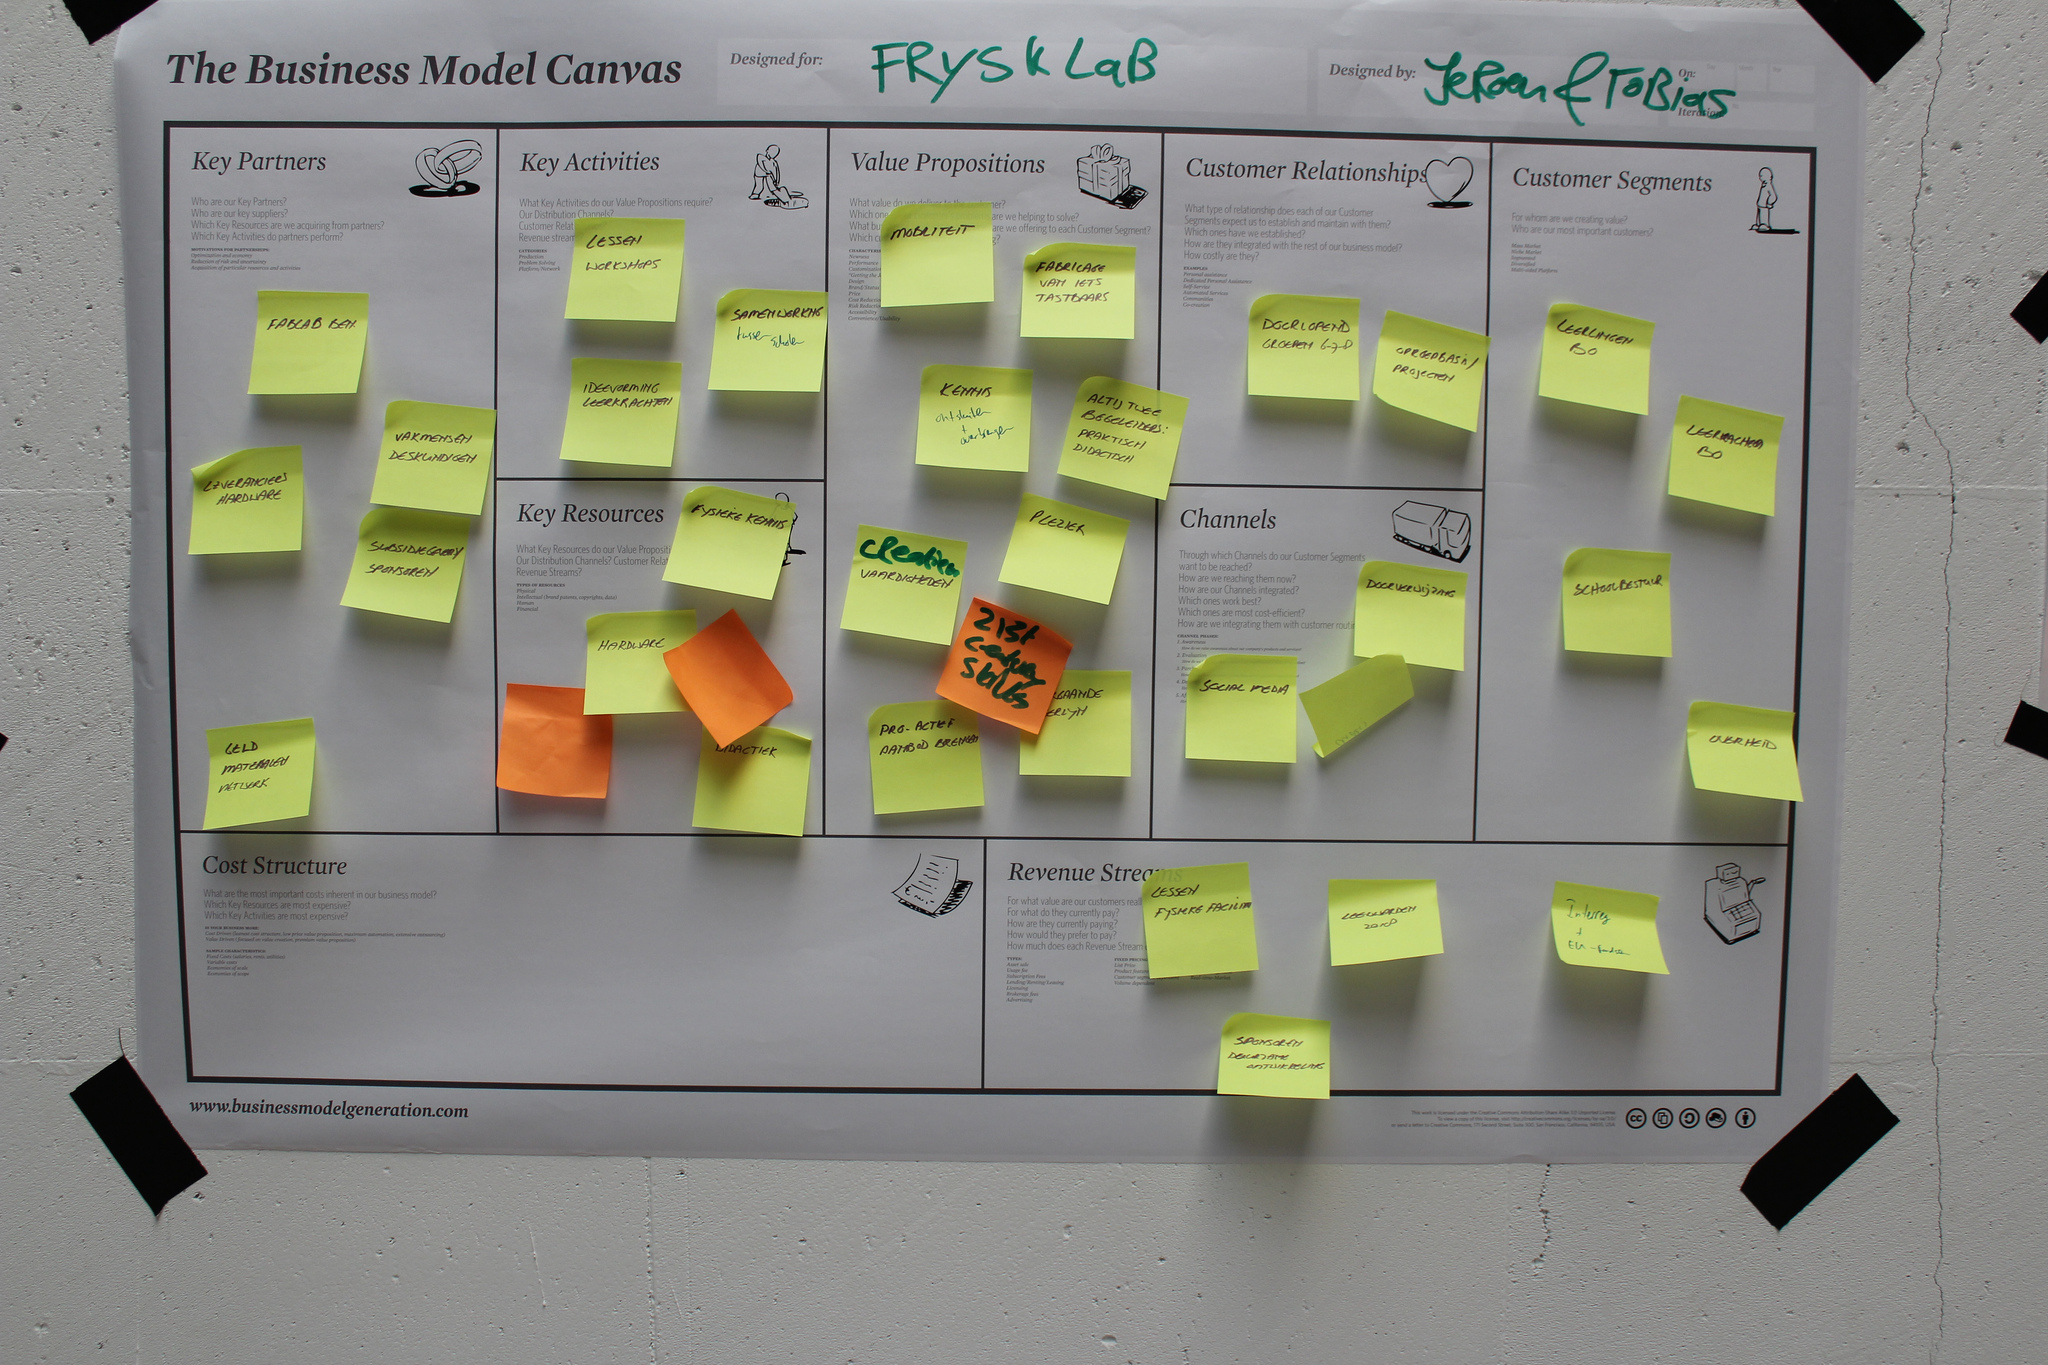 Met FryskLab aan het business model canvassen